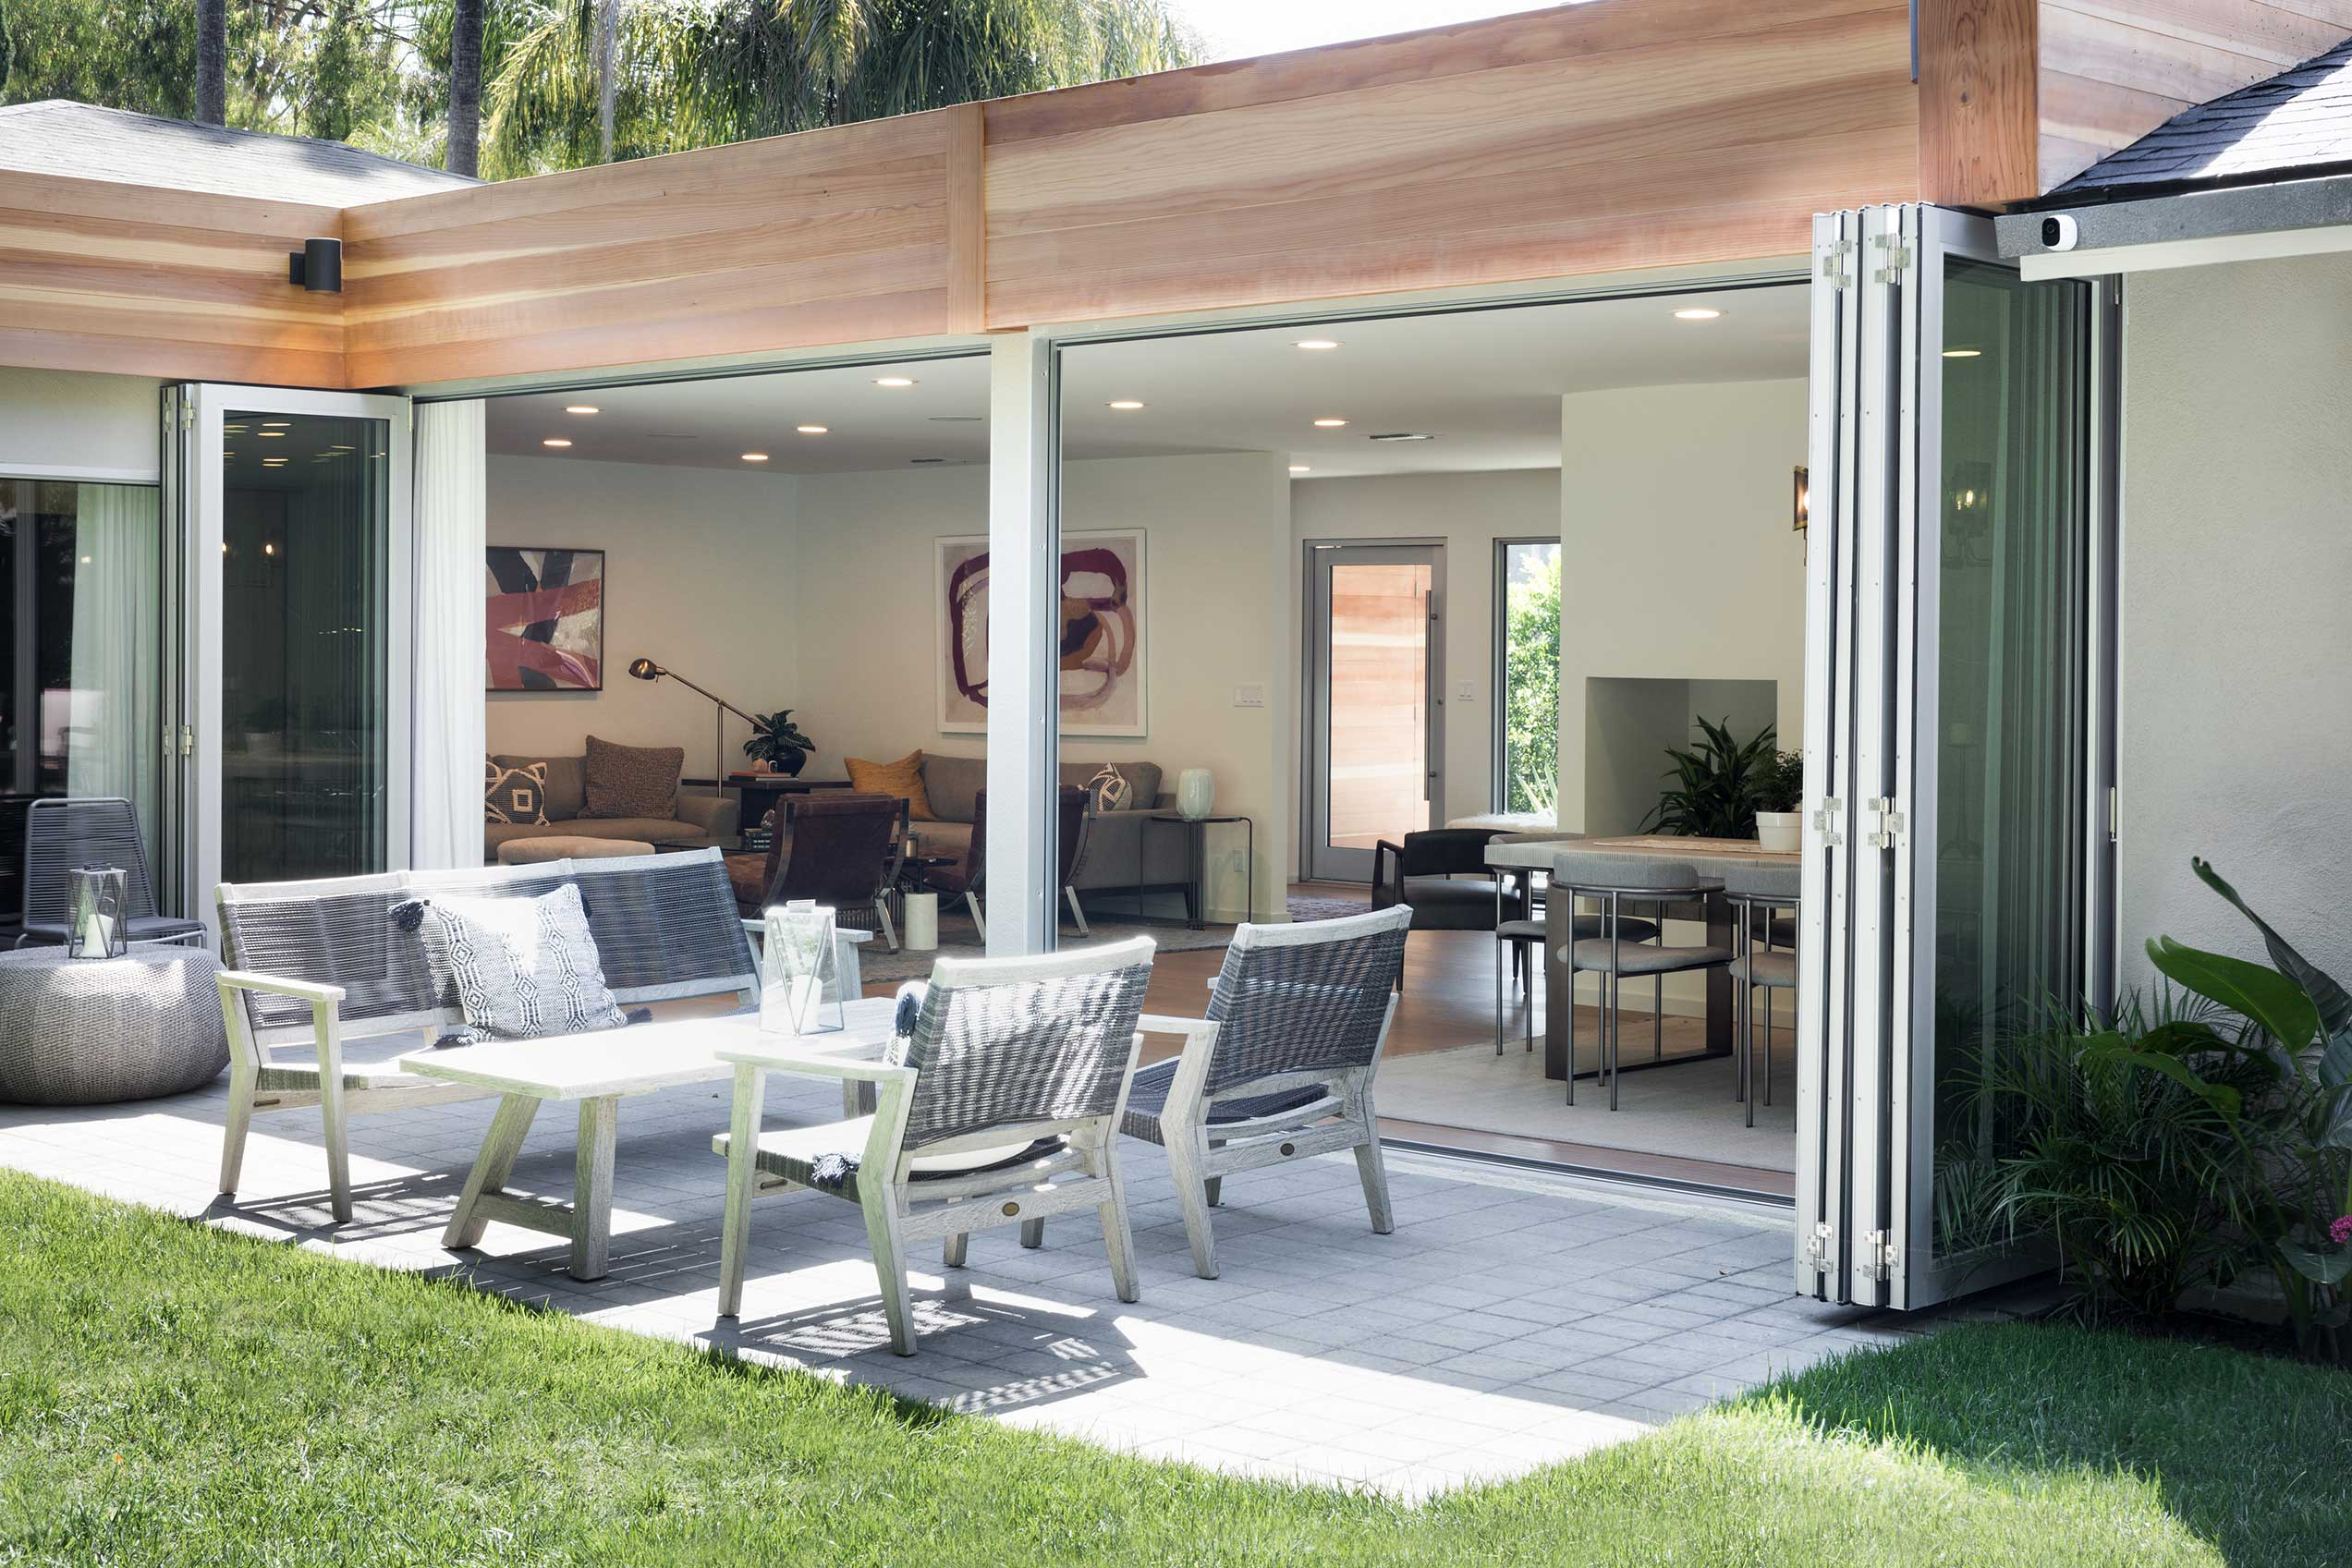 When opened, the two four-panel bi-fold doors let fresh Southern California air course through the living/dining area.